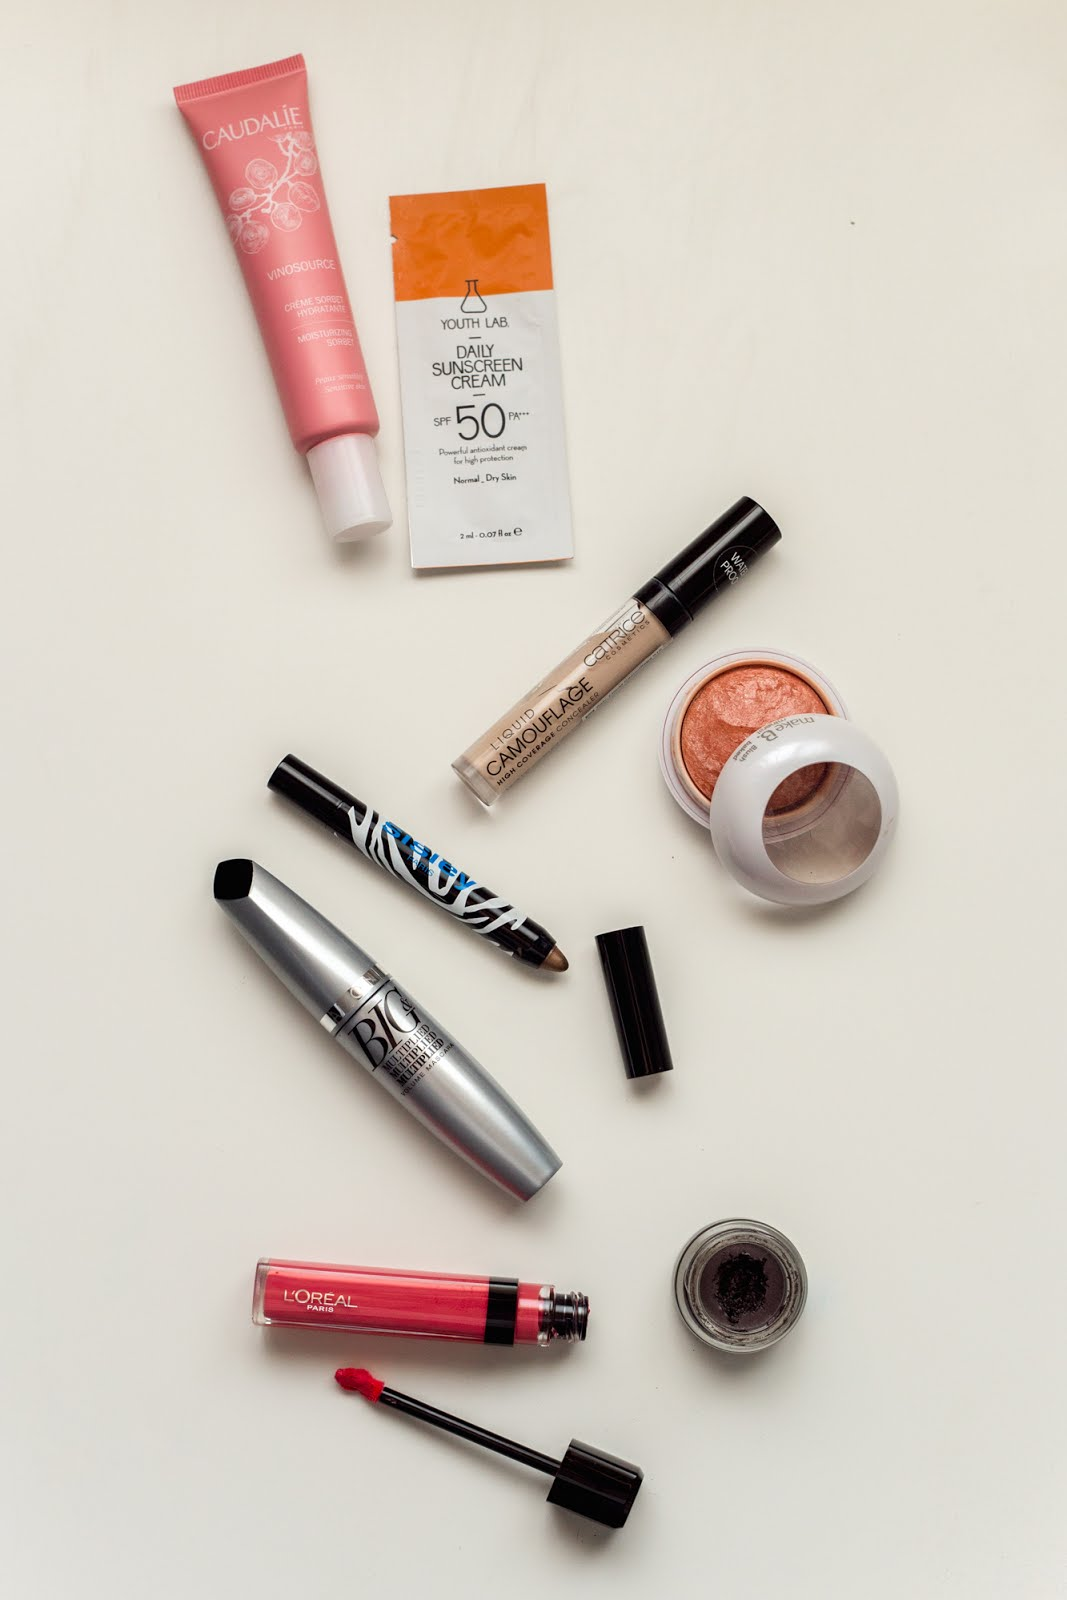 A quick make-up using only 8 items that will guarantee you a flawless looking face.